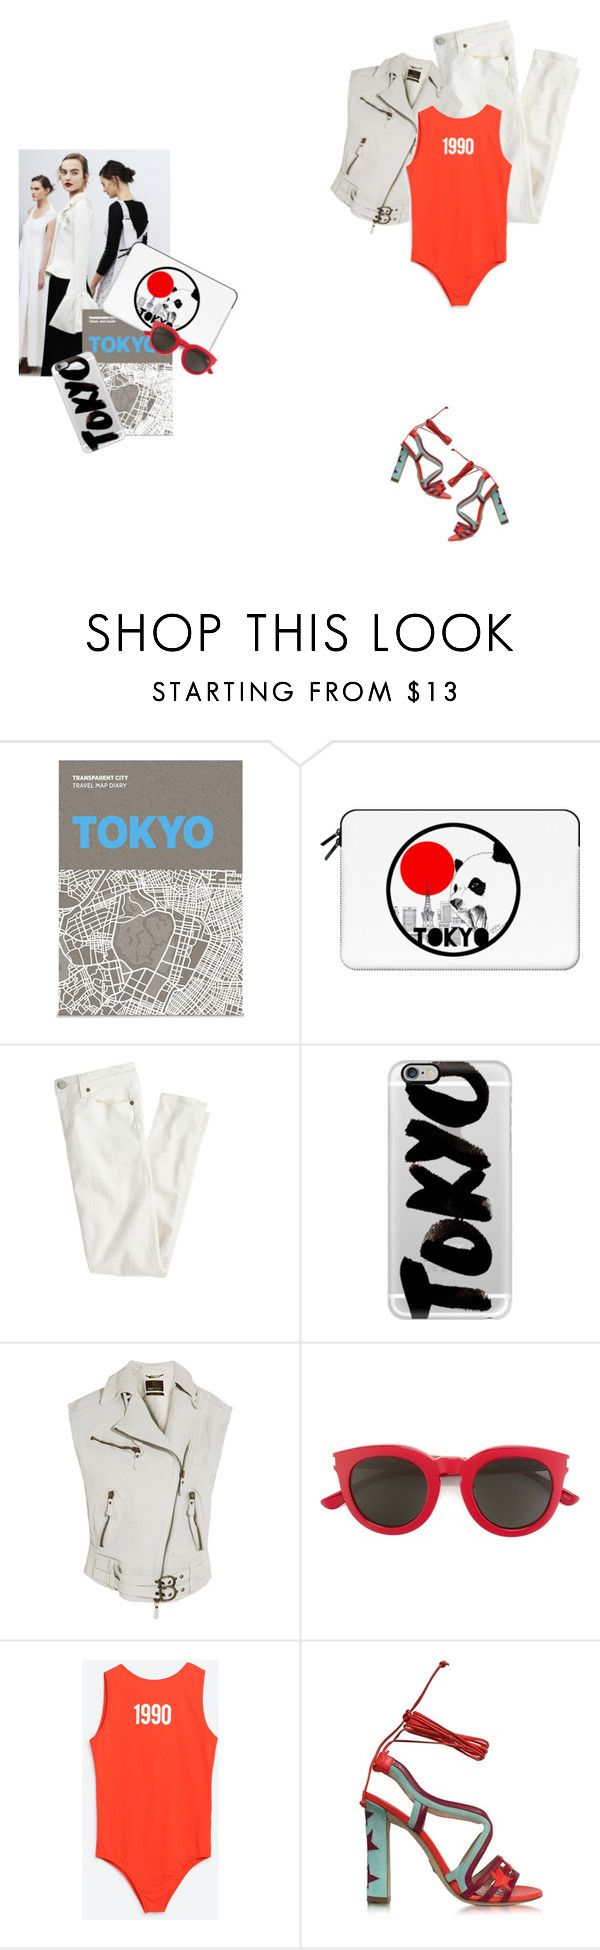 """Time to say goodbye"" by lajudy ❤ liked on Polyvore featuring Palomar, Casetify, J.Crew, Roberto Cavalli, Yves Saint Laurent, Paula Cademartori, tokyo and Packandgo"